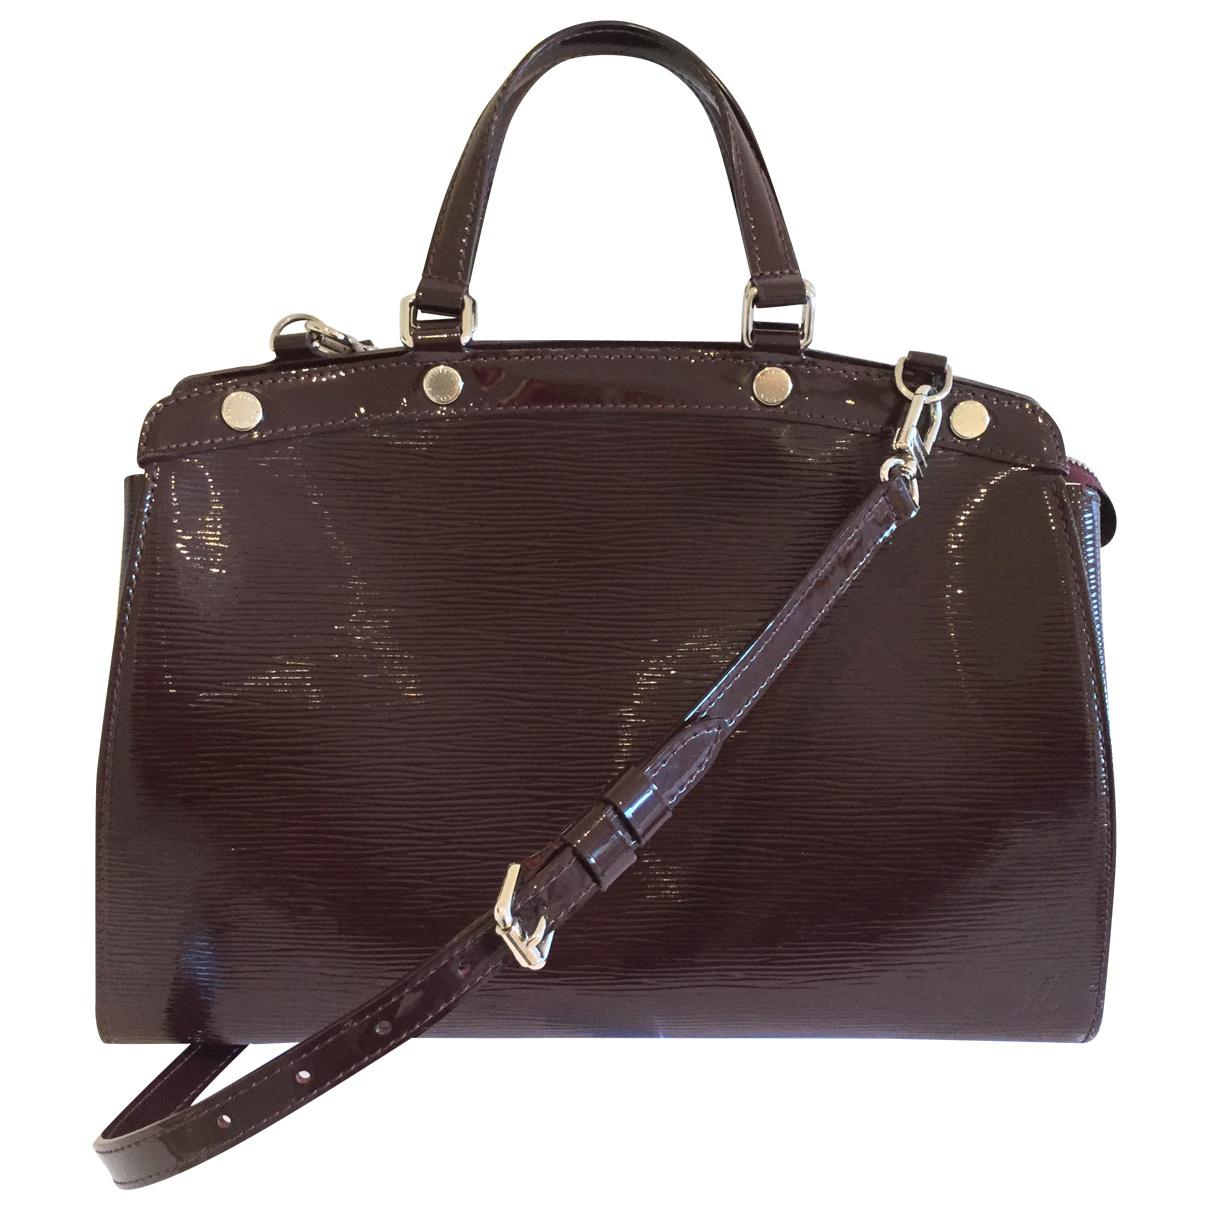 Louis Vuitton Pre-owned - Patent leather bag 0kQzvELqh